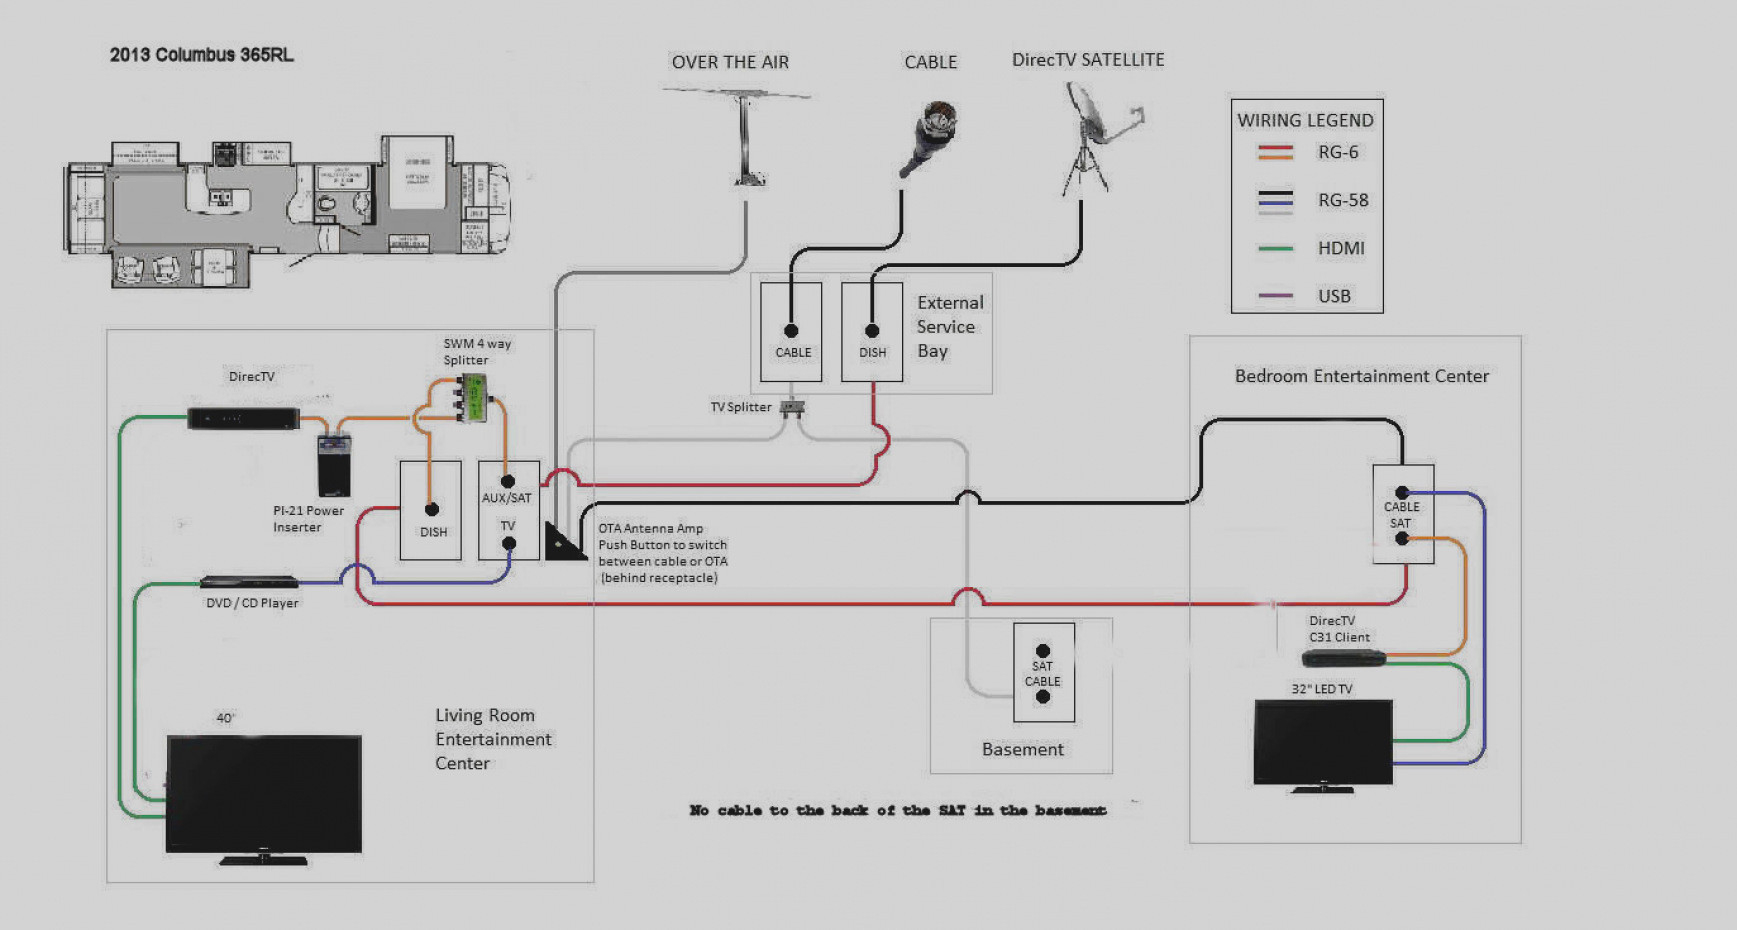 Wiring Diagram Entertainment Center | Wiring Diagram - Rv Cable Tv Wiring Diagram